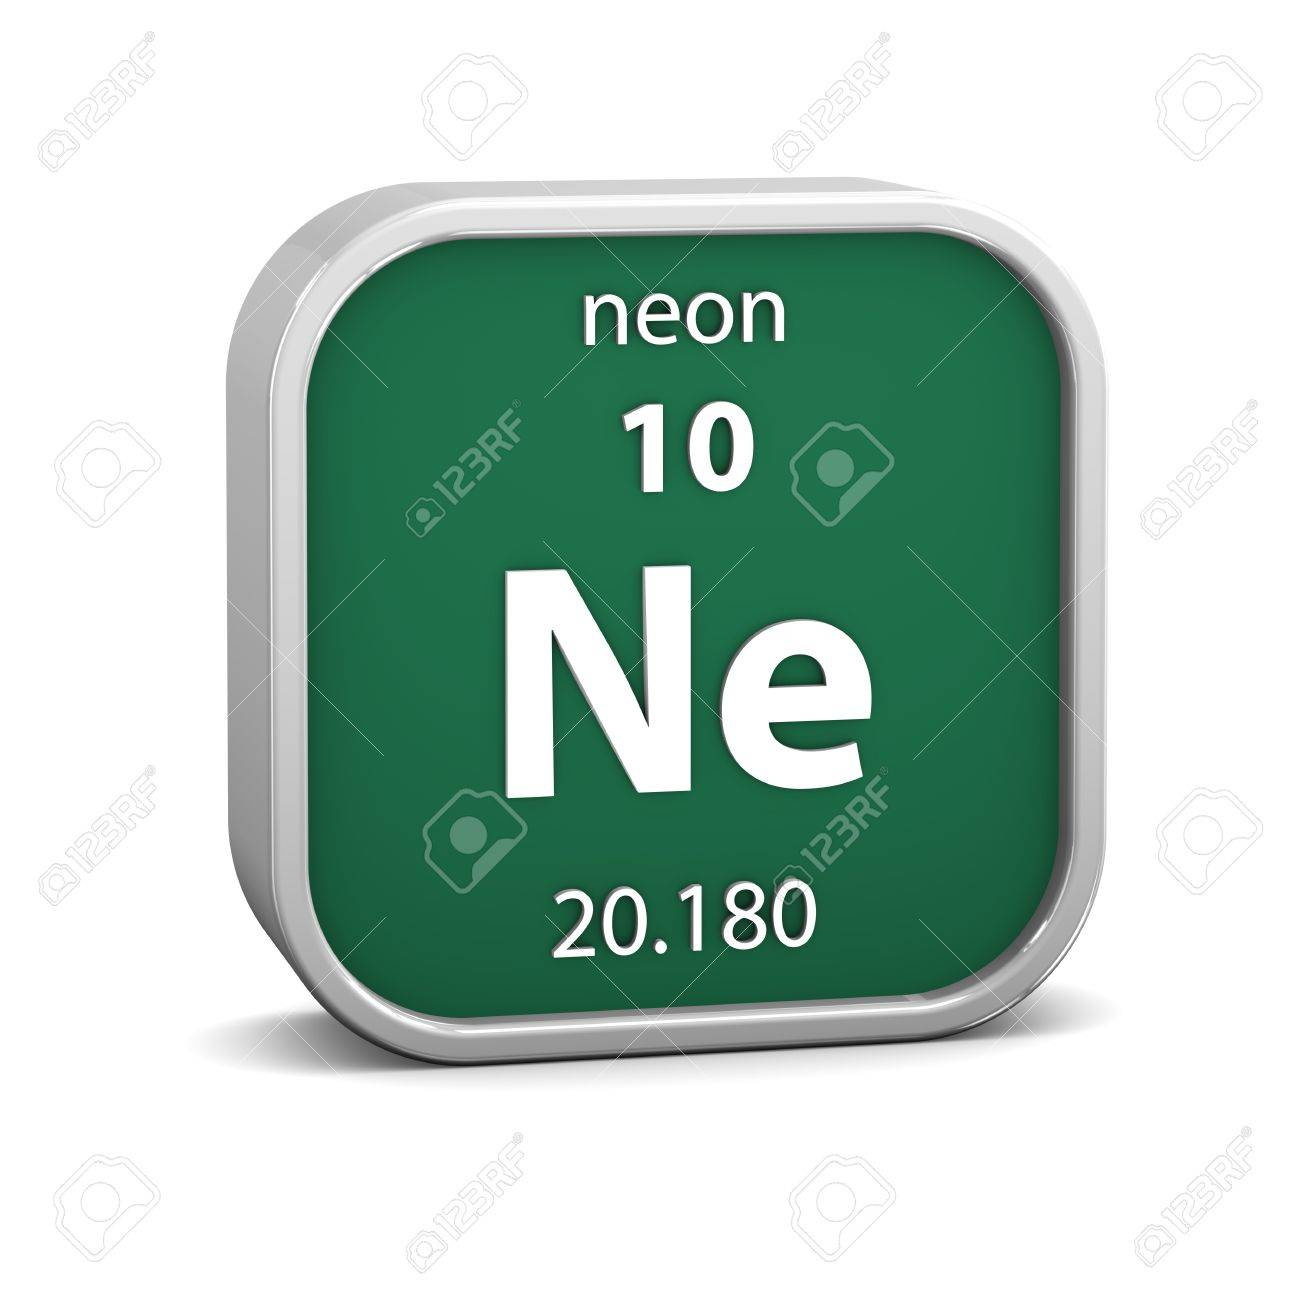 Neon Material On The Periodic Table. Part Of A Series. Stock Photo ...